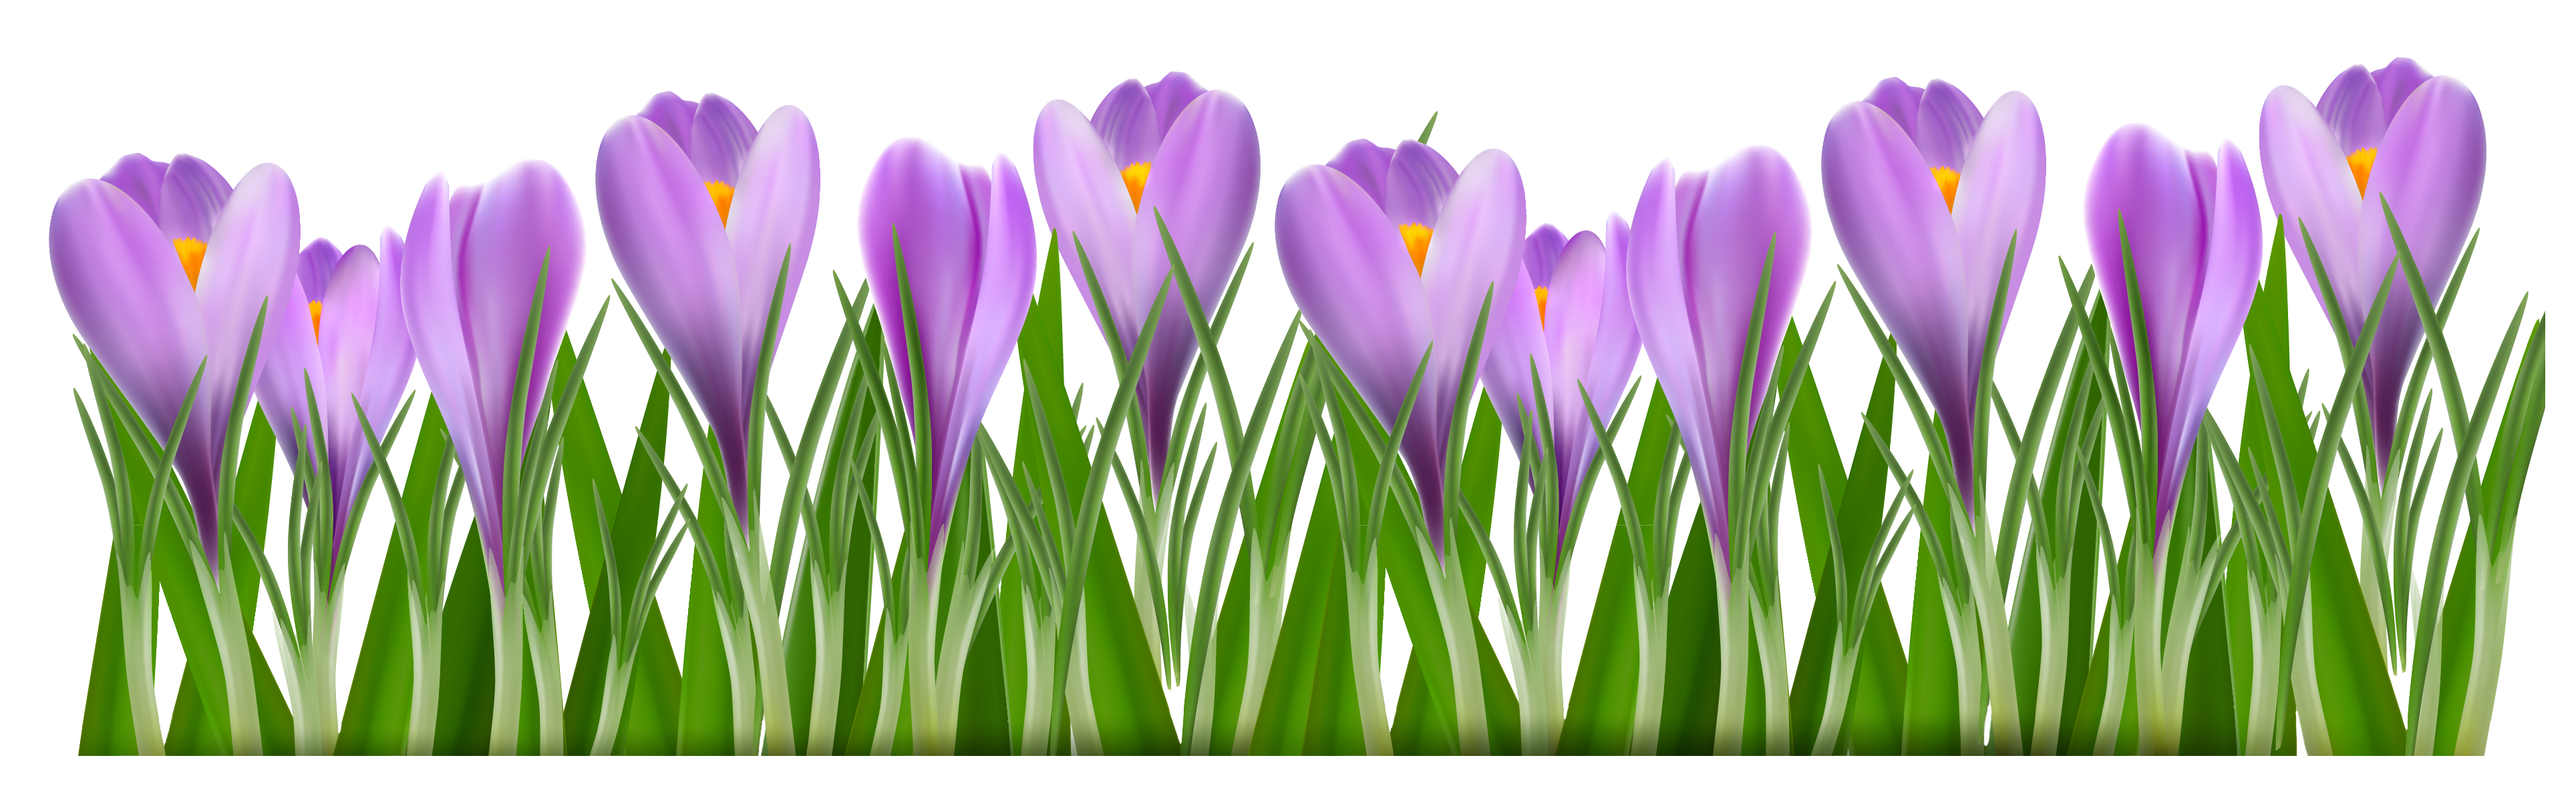 Spring Crocus Png - Pin by Jeanine Echevarria on Paint Shop Pro and Digital Scrap ...